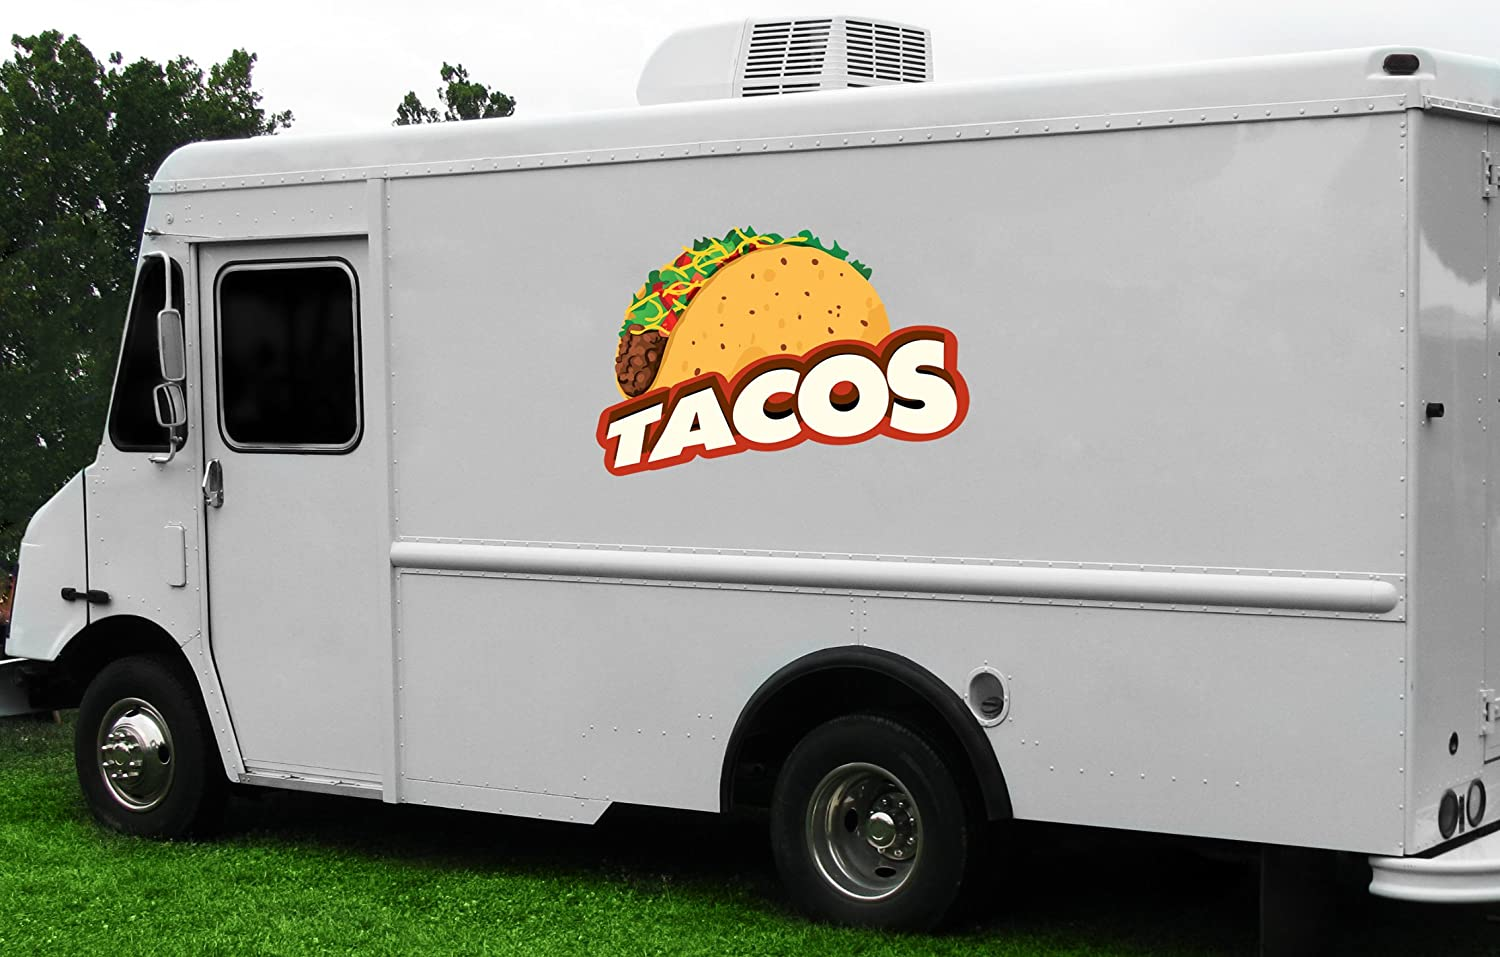 Tacos 8 Concession Decal Sign cart Trailer Stand Sticker Equipment